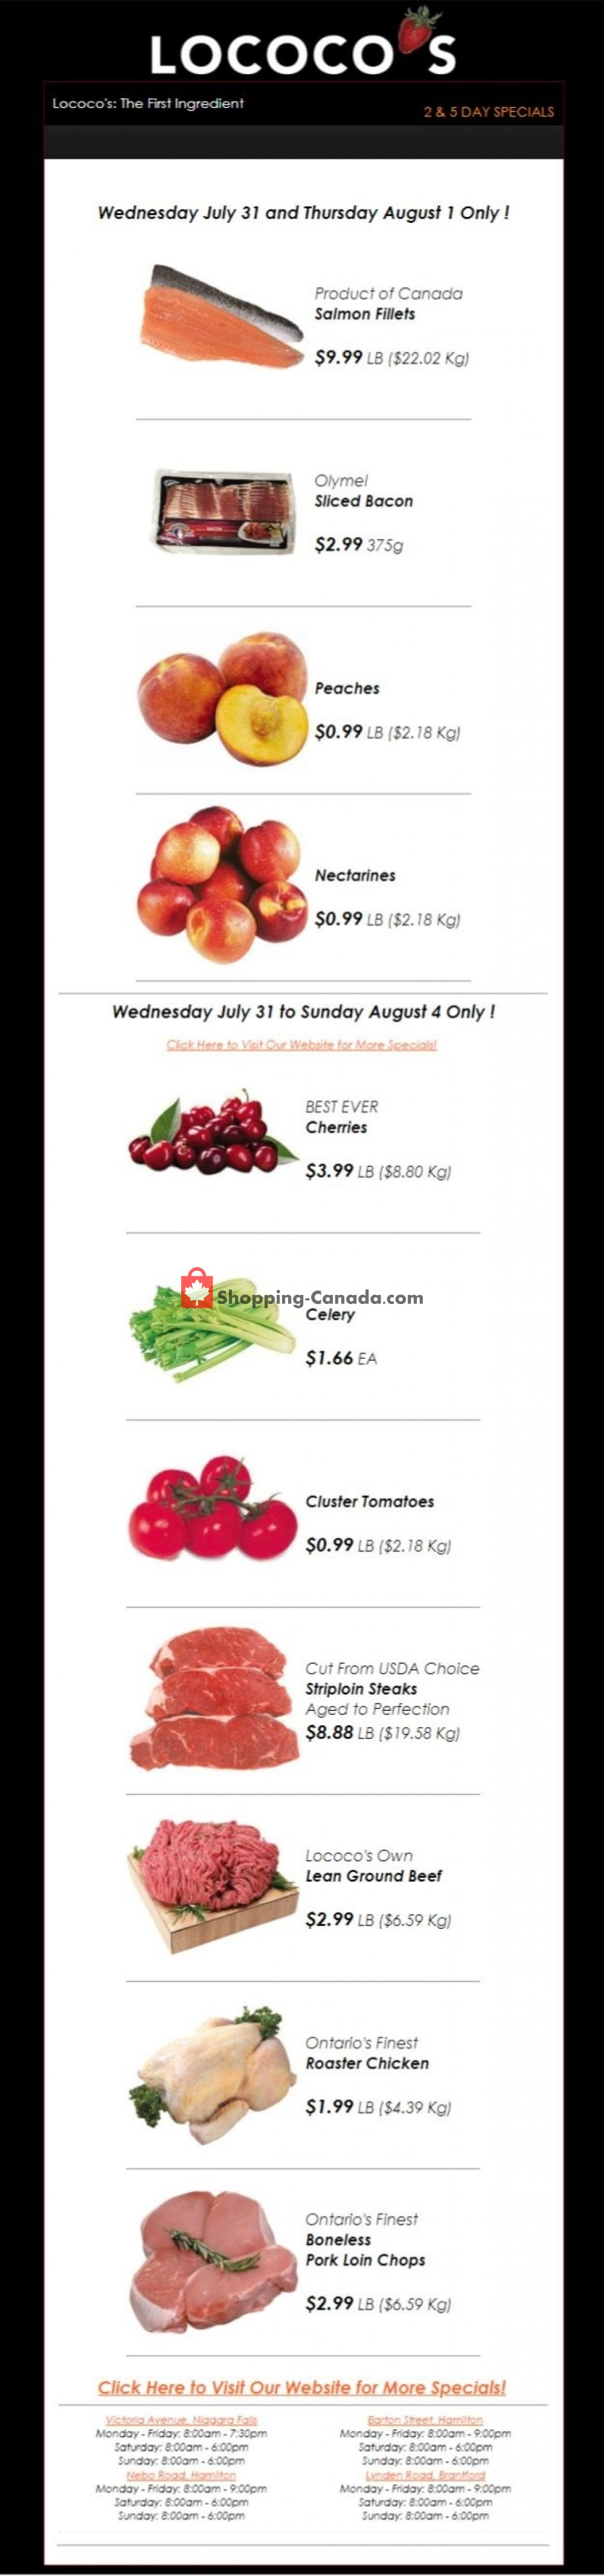 Flyer Lococo's Canada - from Wednesday July 31, 2019 to Thursday August 1, 2019